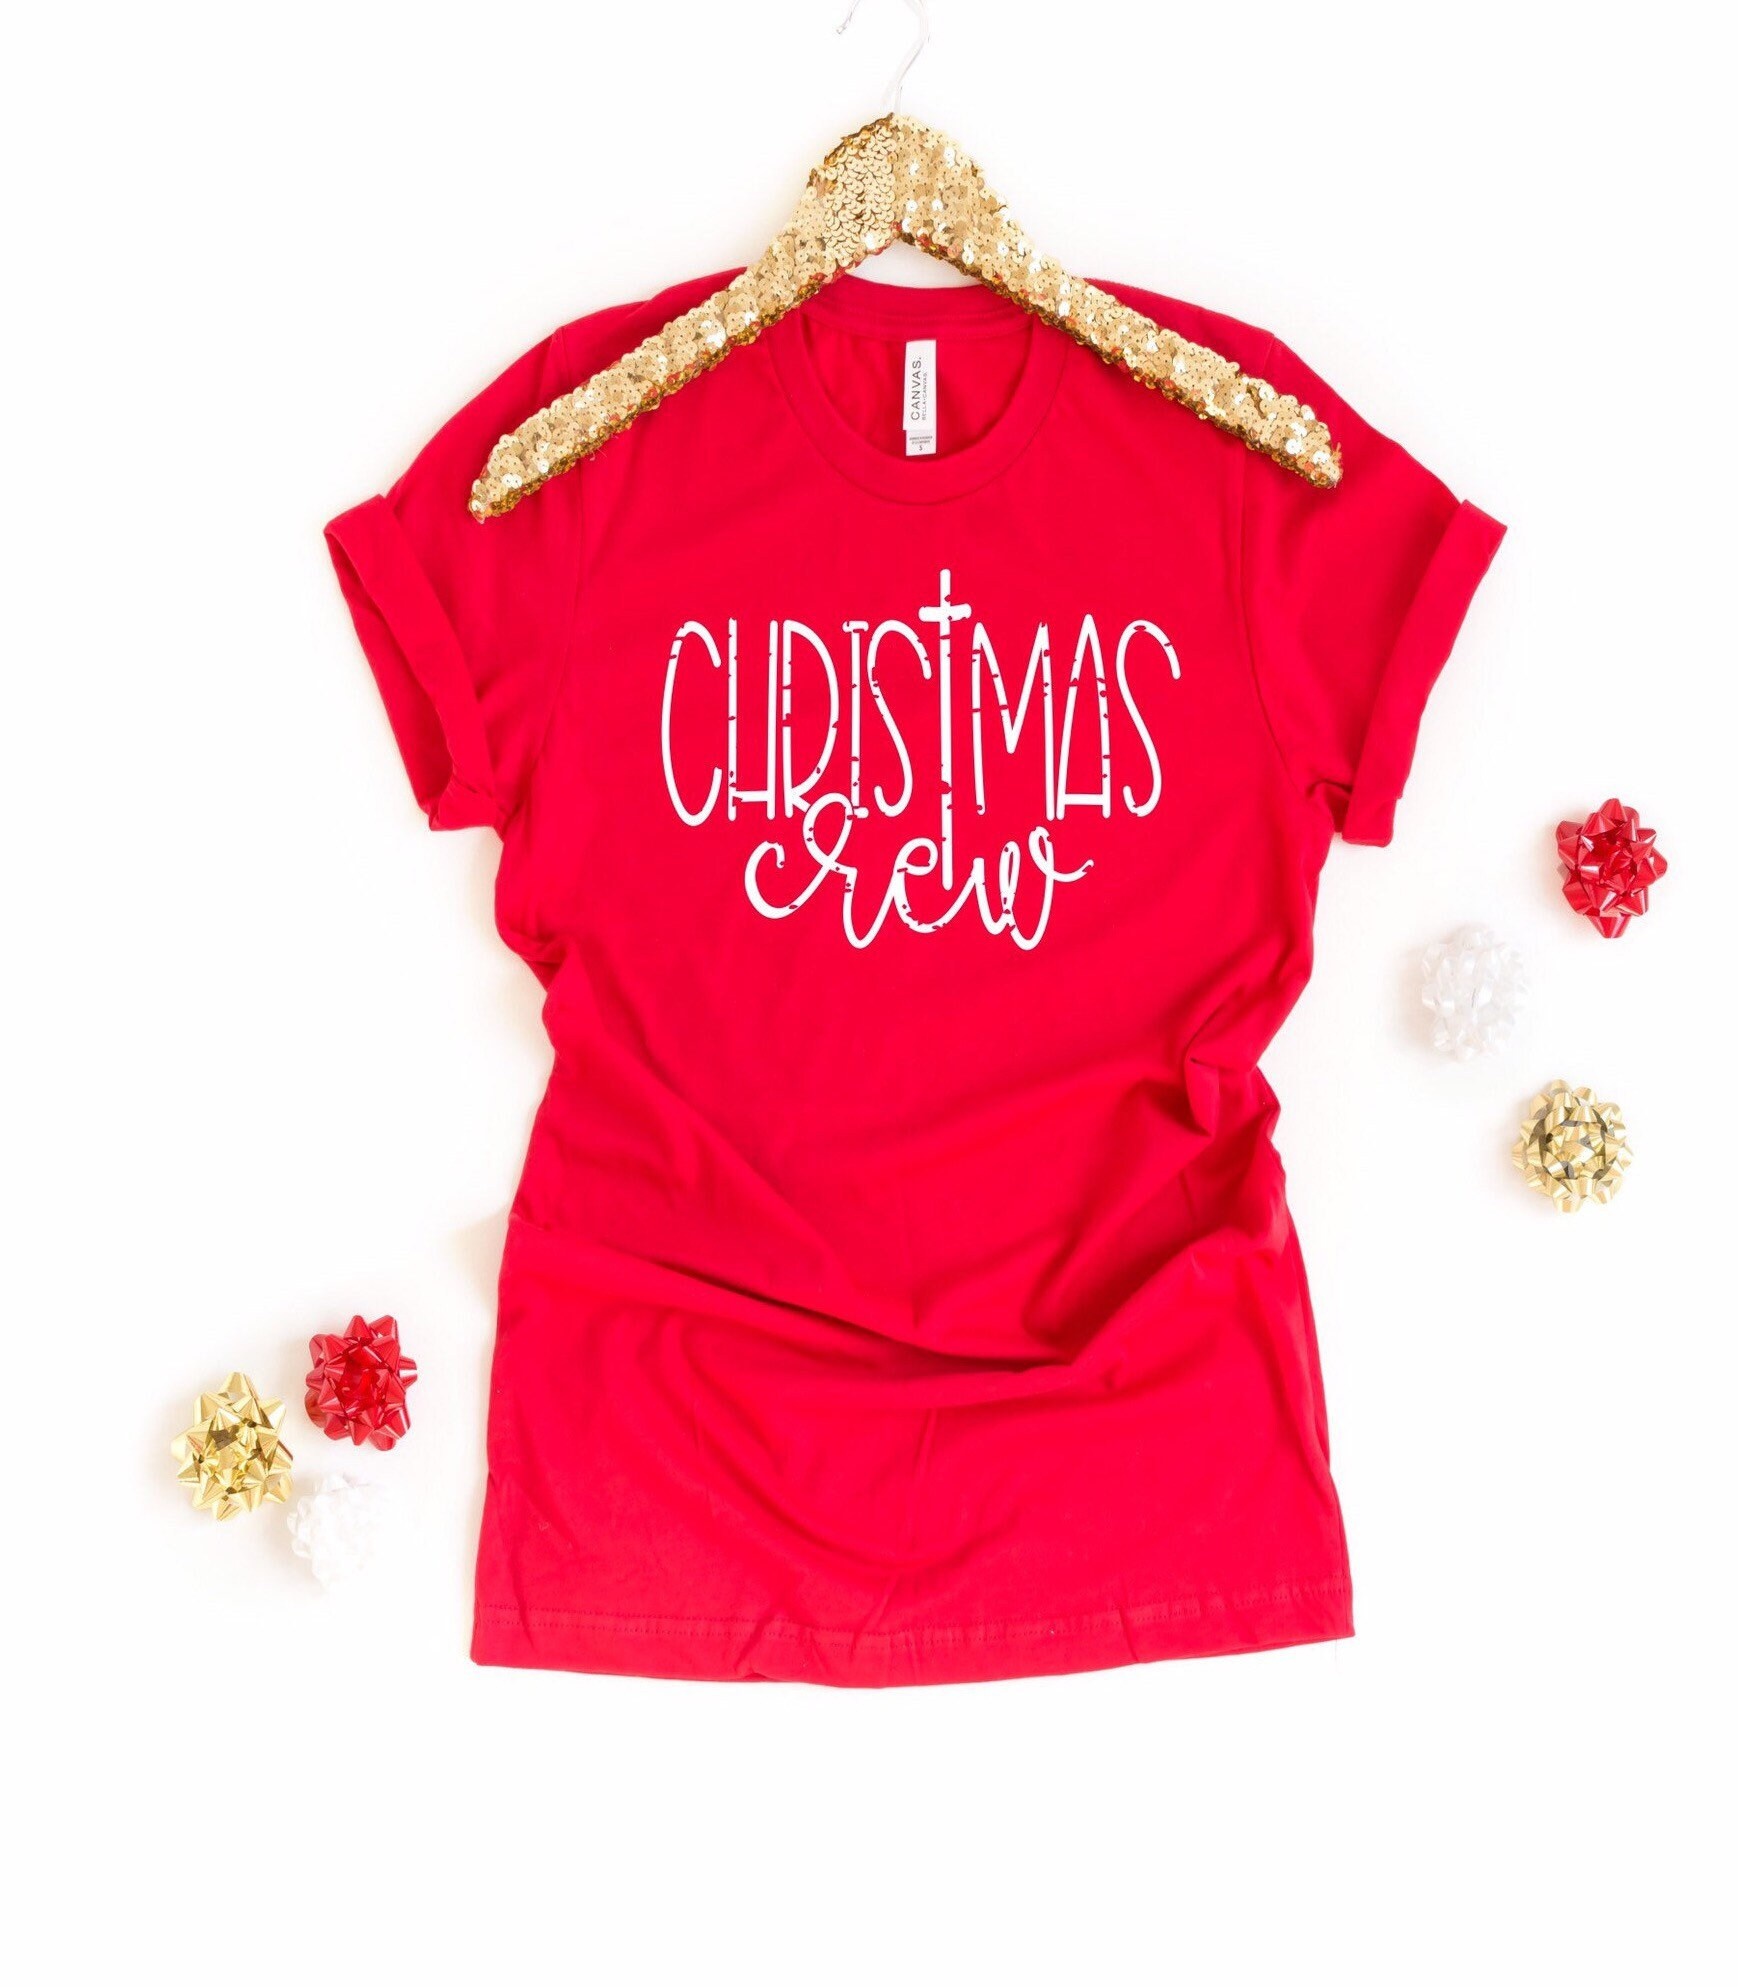 Matching Christmas Shirts For Family.Christmas Crew Shirt Family Christmas Shirts Matching